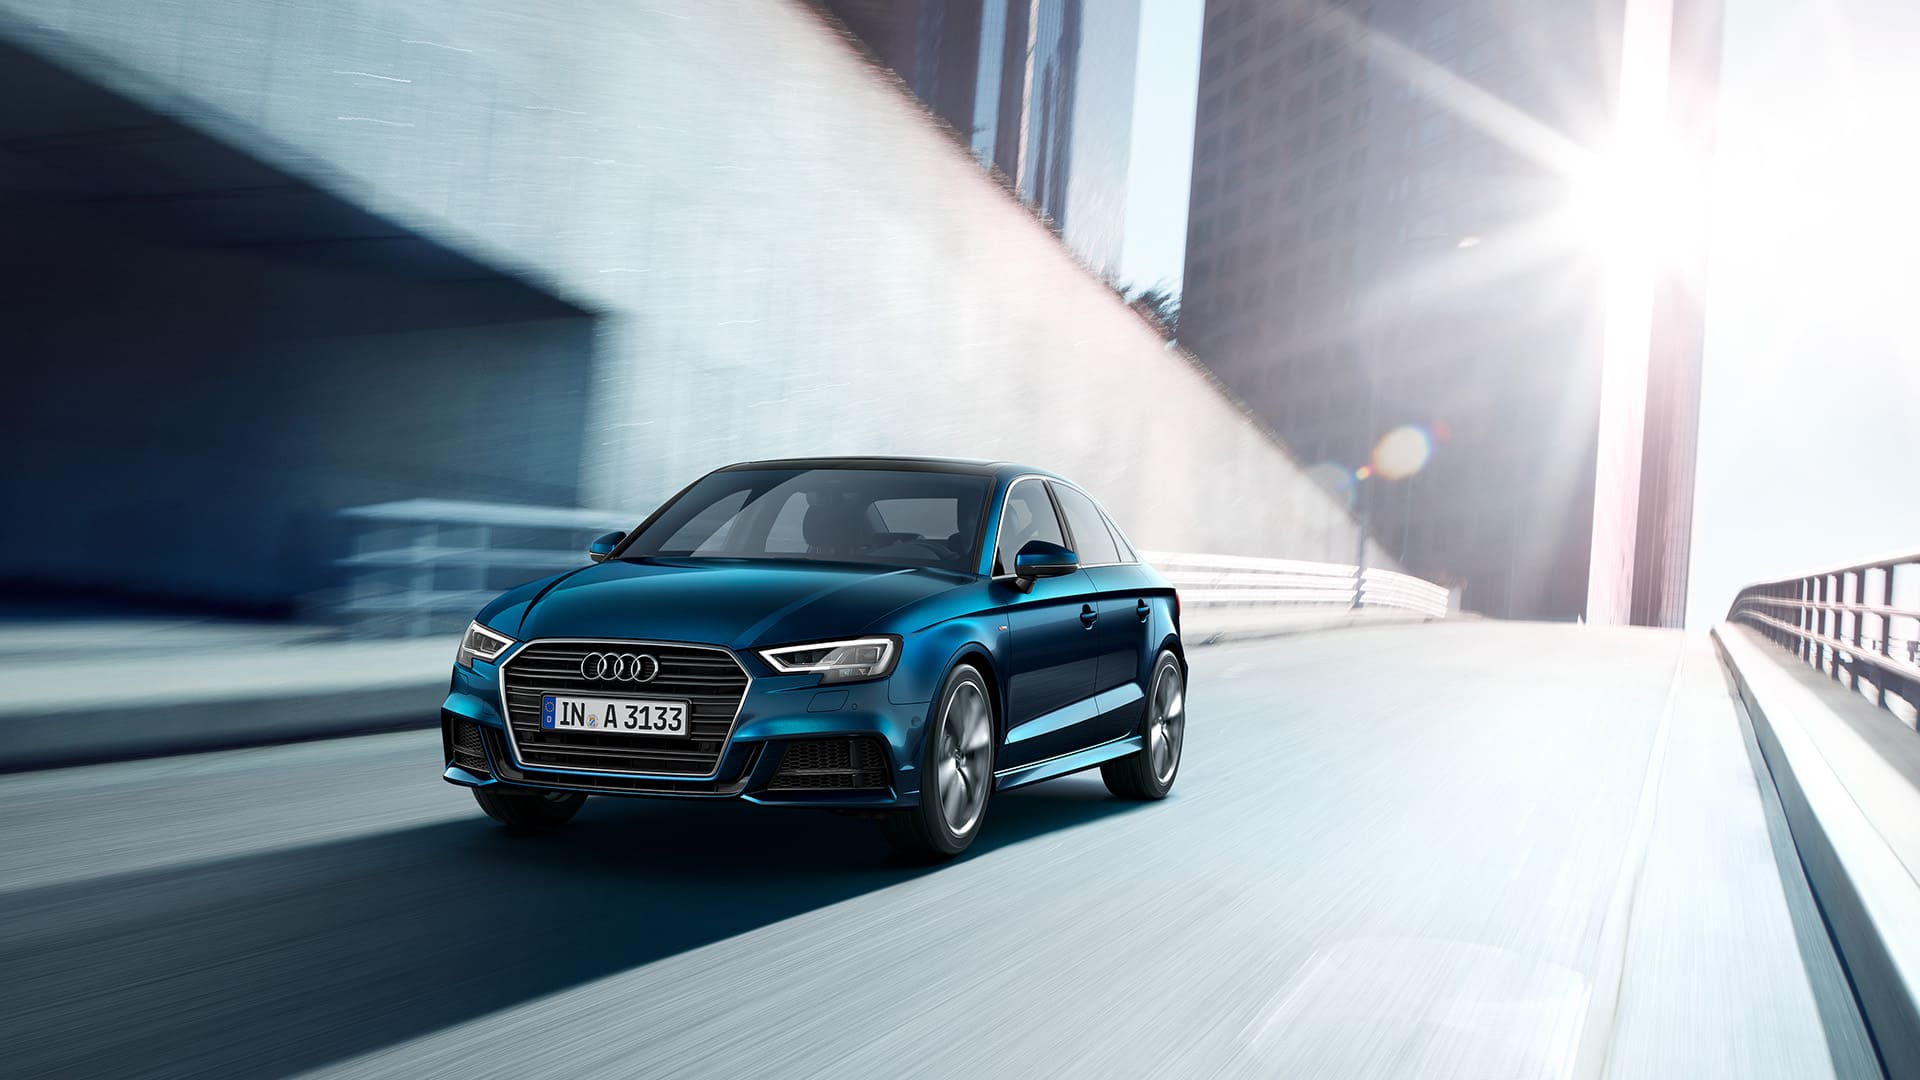 Audi A3 Berline 2019 in blauw